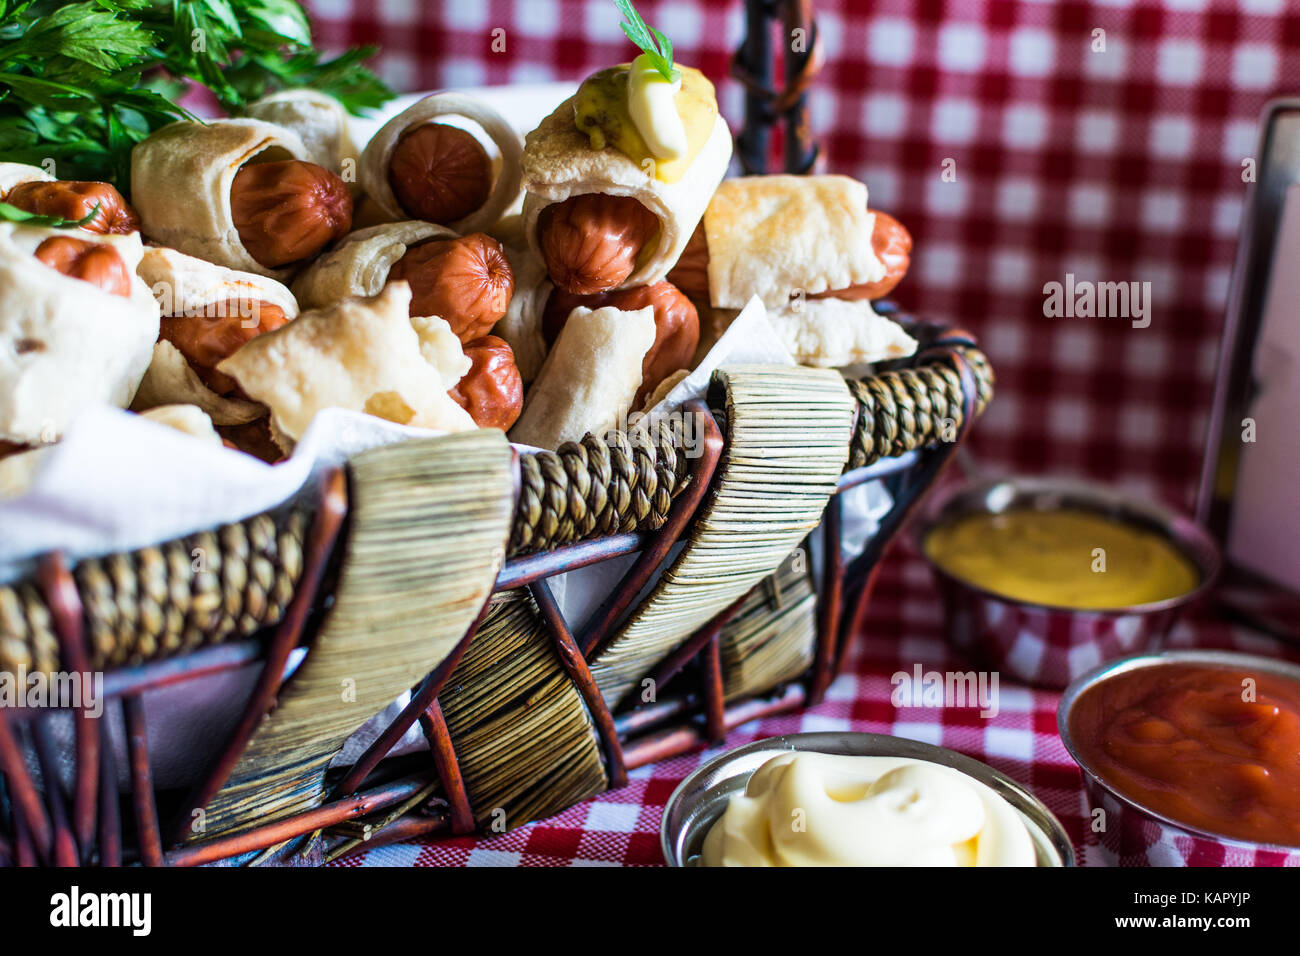 Wicker basket with artisan mini hot dogs (Sausage in the dough) with mustard, mayonnaise on a plaid background - Stock Image